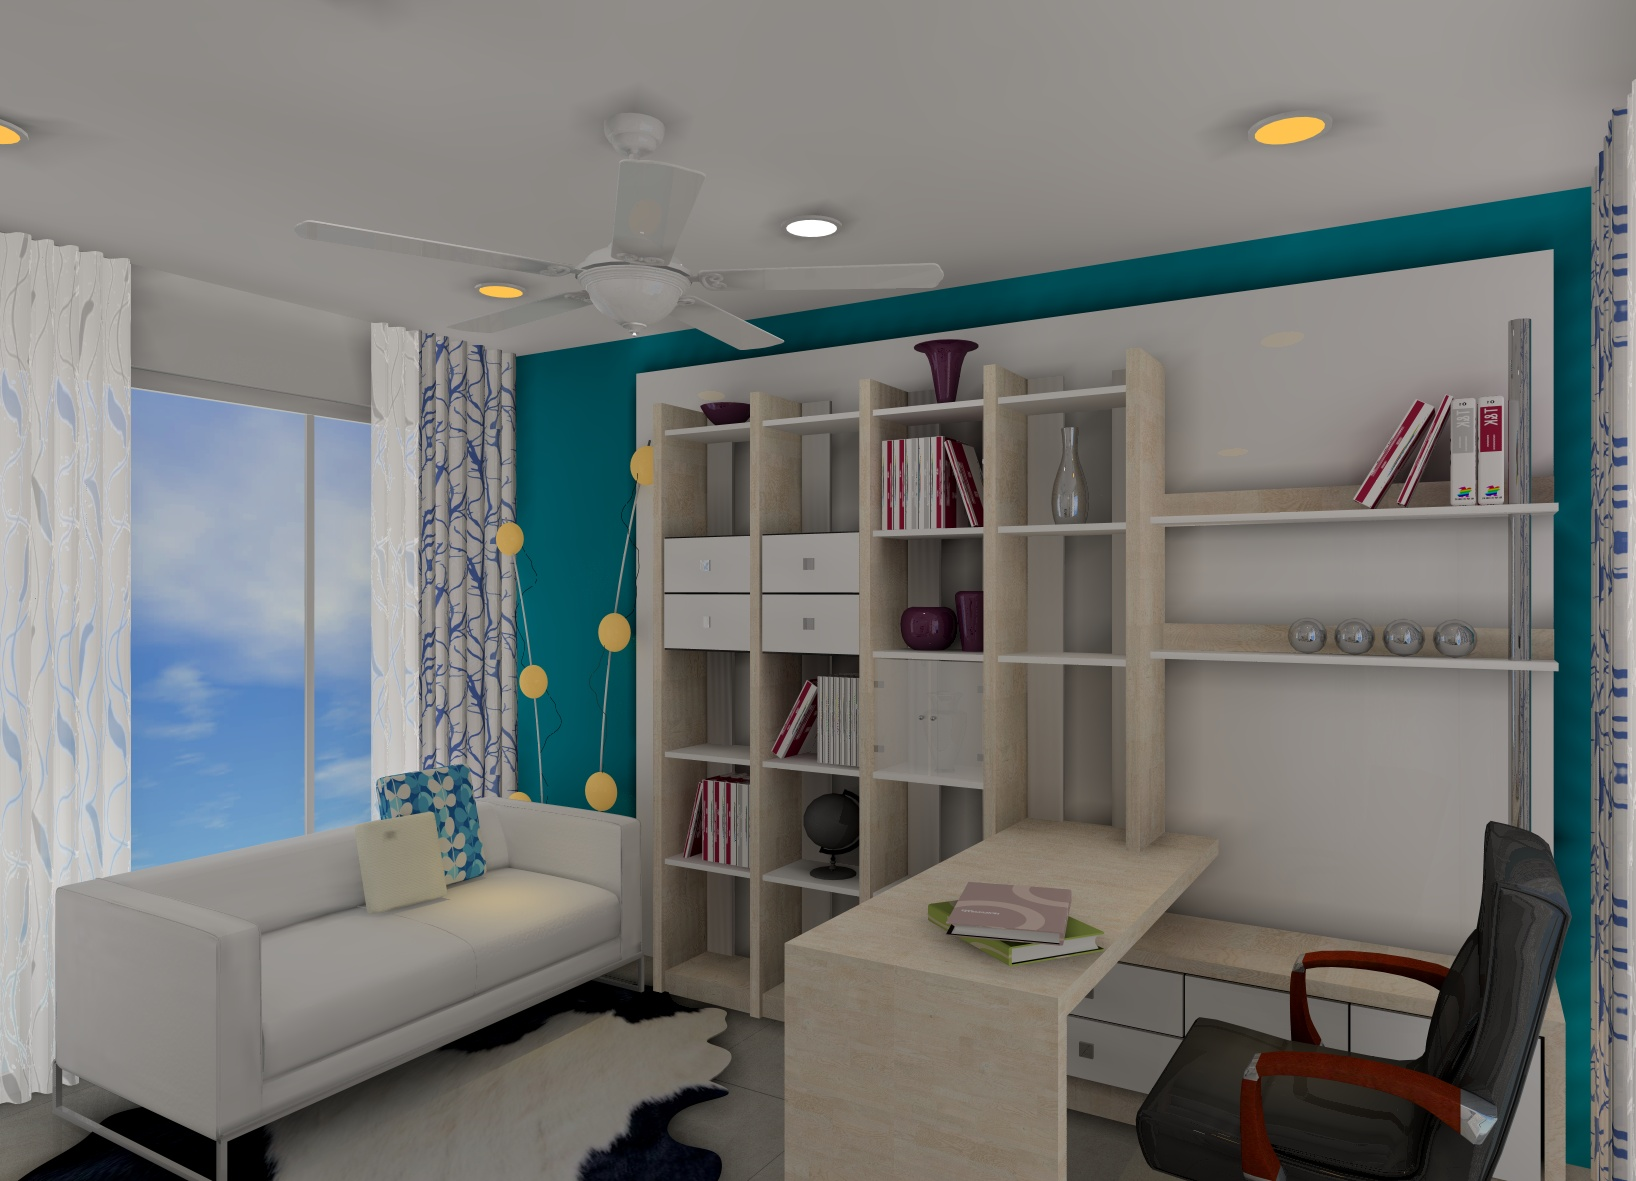 Study Room Interior Design Interior Design Malaysia L Expert Interior Design Renovation